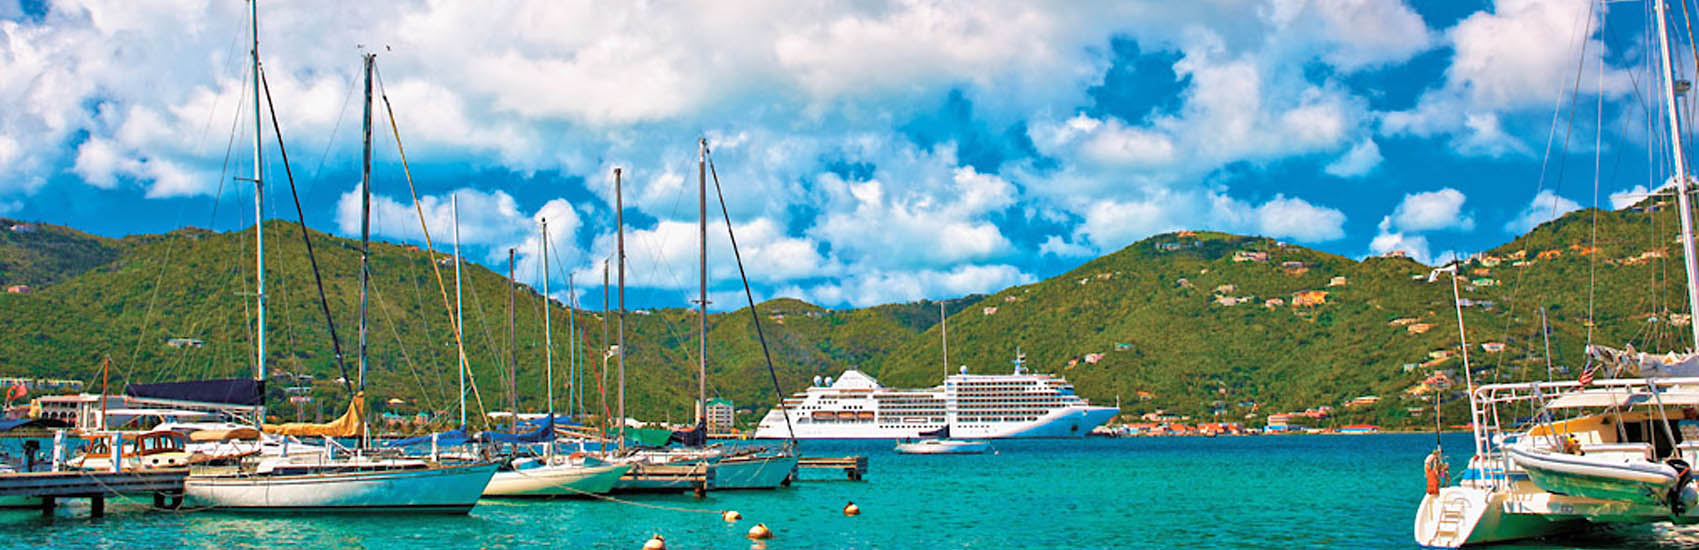 Get More Caribbean with Silversea Cruises 0